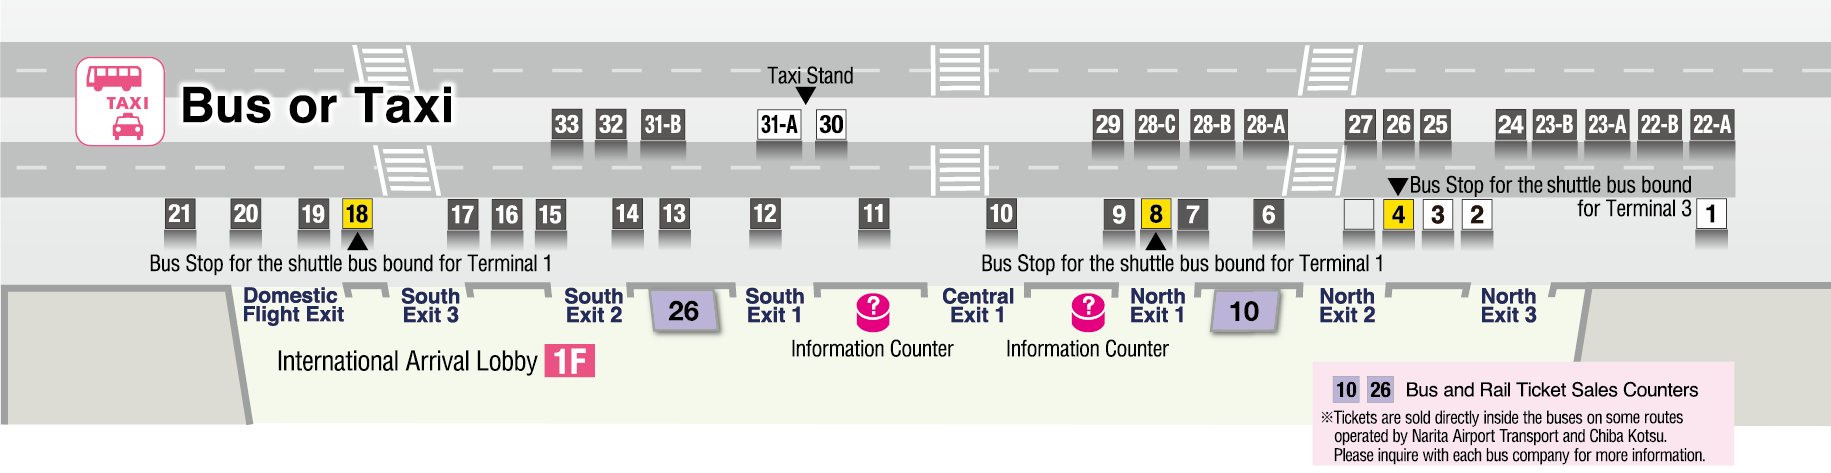 Map of terminal shuttle bus stops on the 1st floor of Terminal 2.